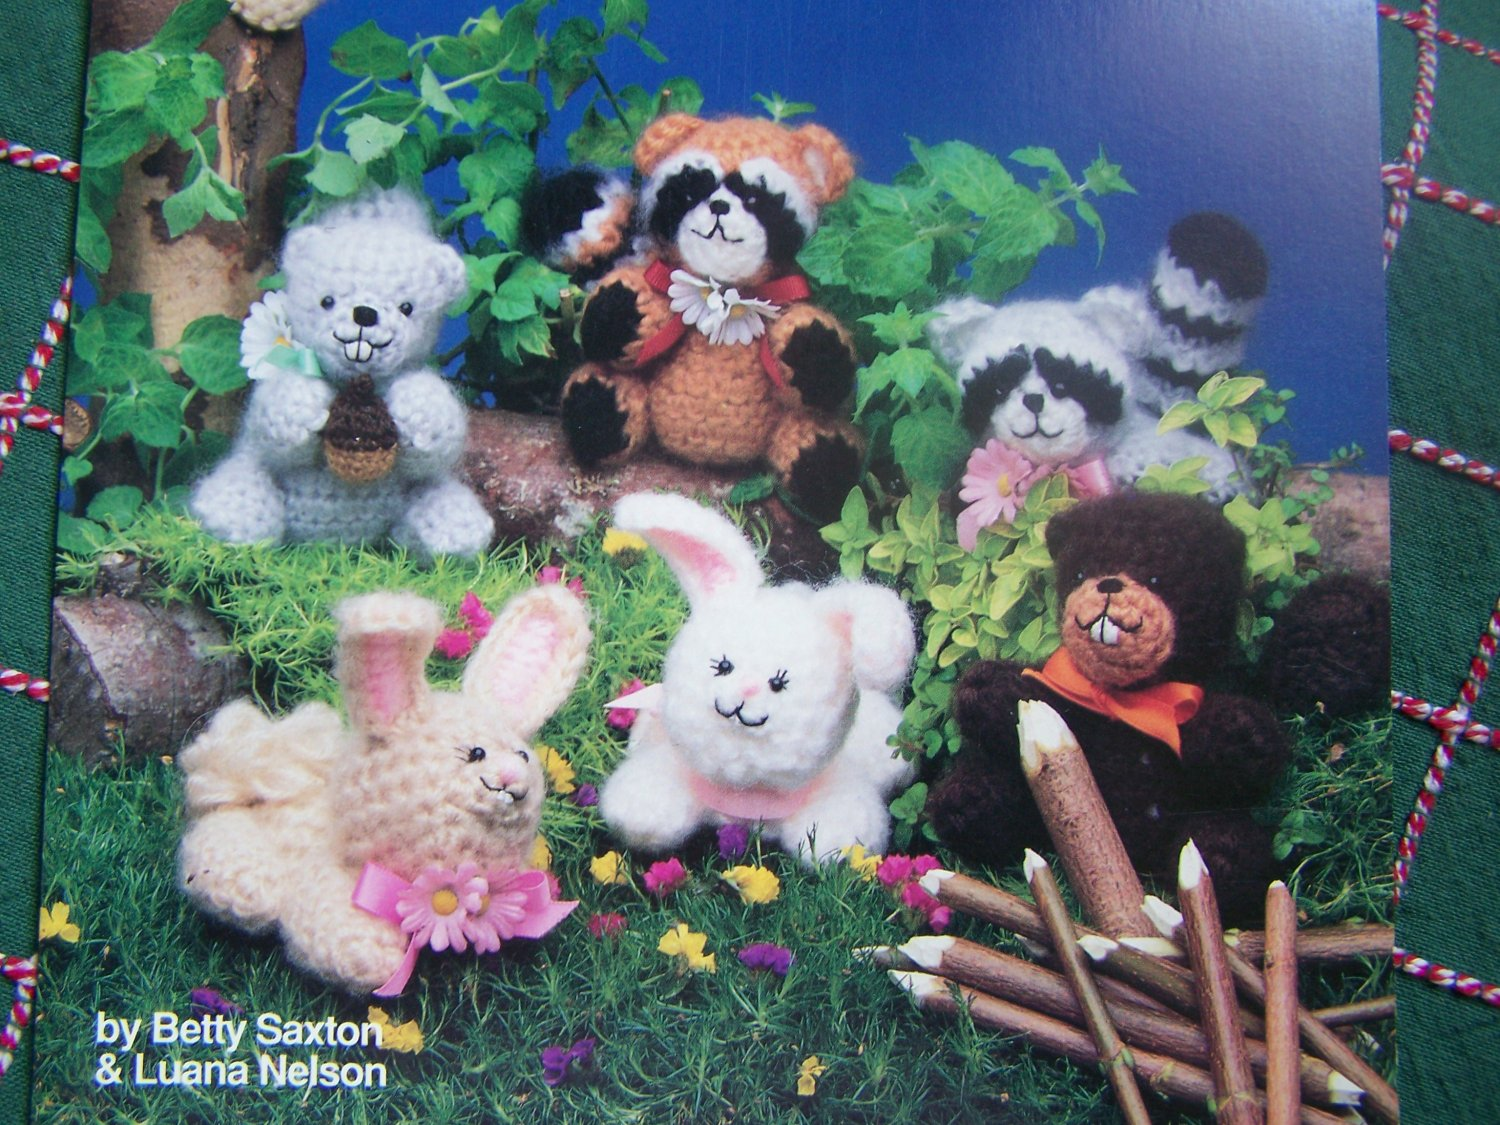 Knitting Patterns For Forest Animals : USA Free S&H Vintage Crochet Patterns Forest Friends Stuffed Squirrel Rac...